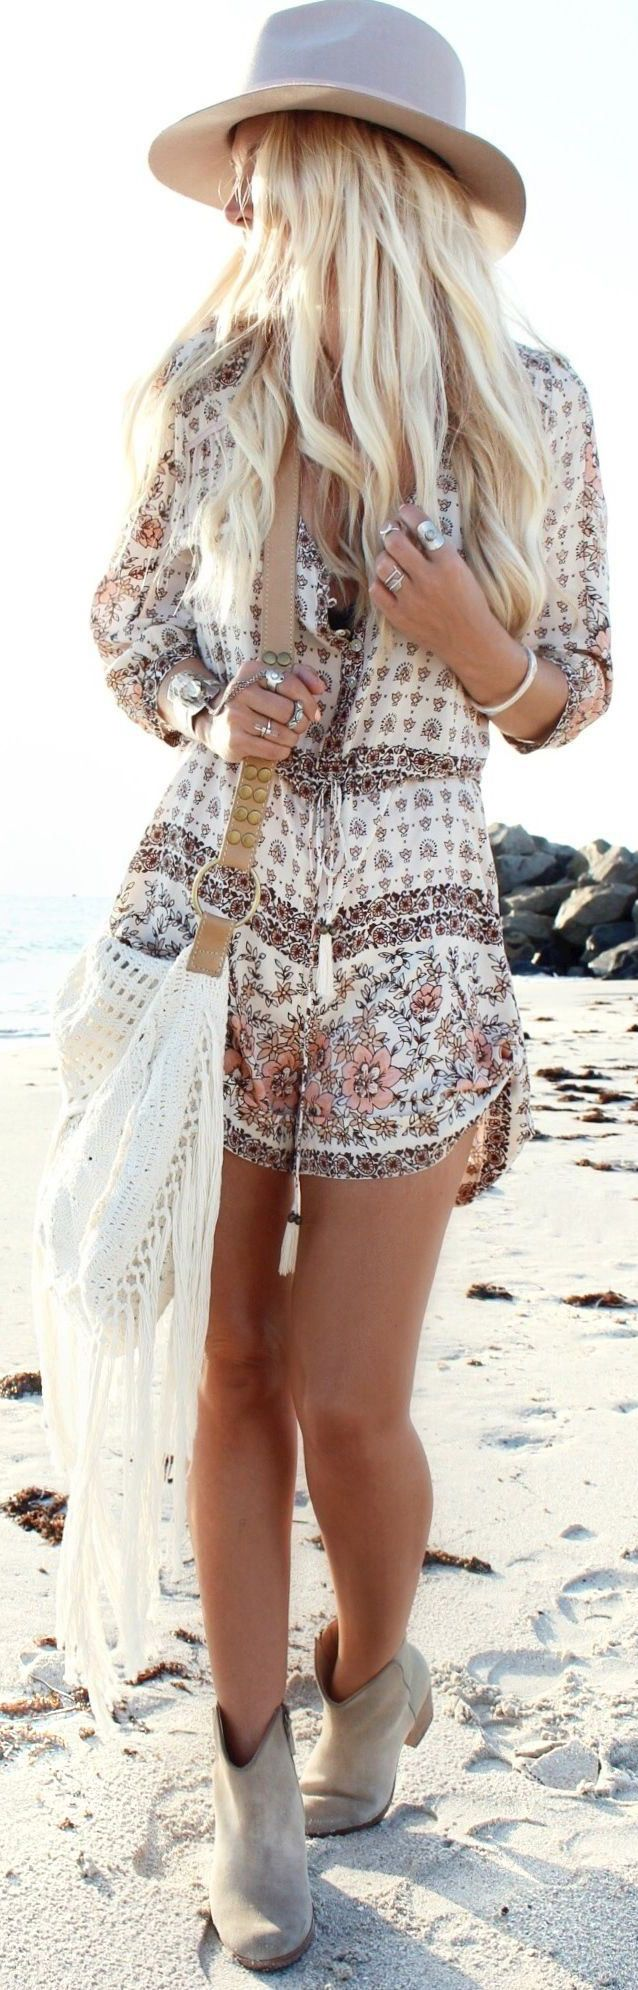 Boho chic romper playsuit with modern hippie fringe purse for a gypsy style look. For MORE Bohemian looks FOLLOW https://www.pinterest.com/happygolicky/the-best-boho-chic-fashion-bohemian-jewelry-gypsy-/ now